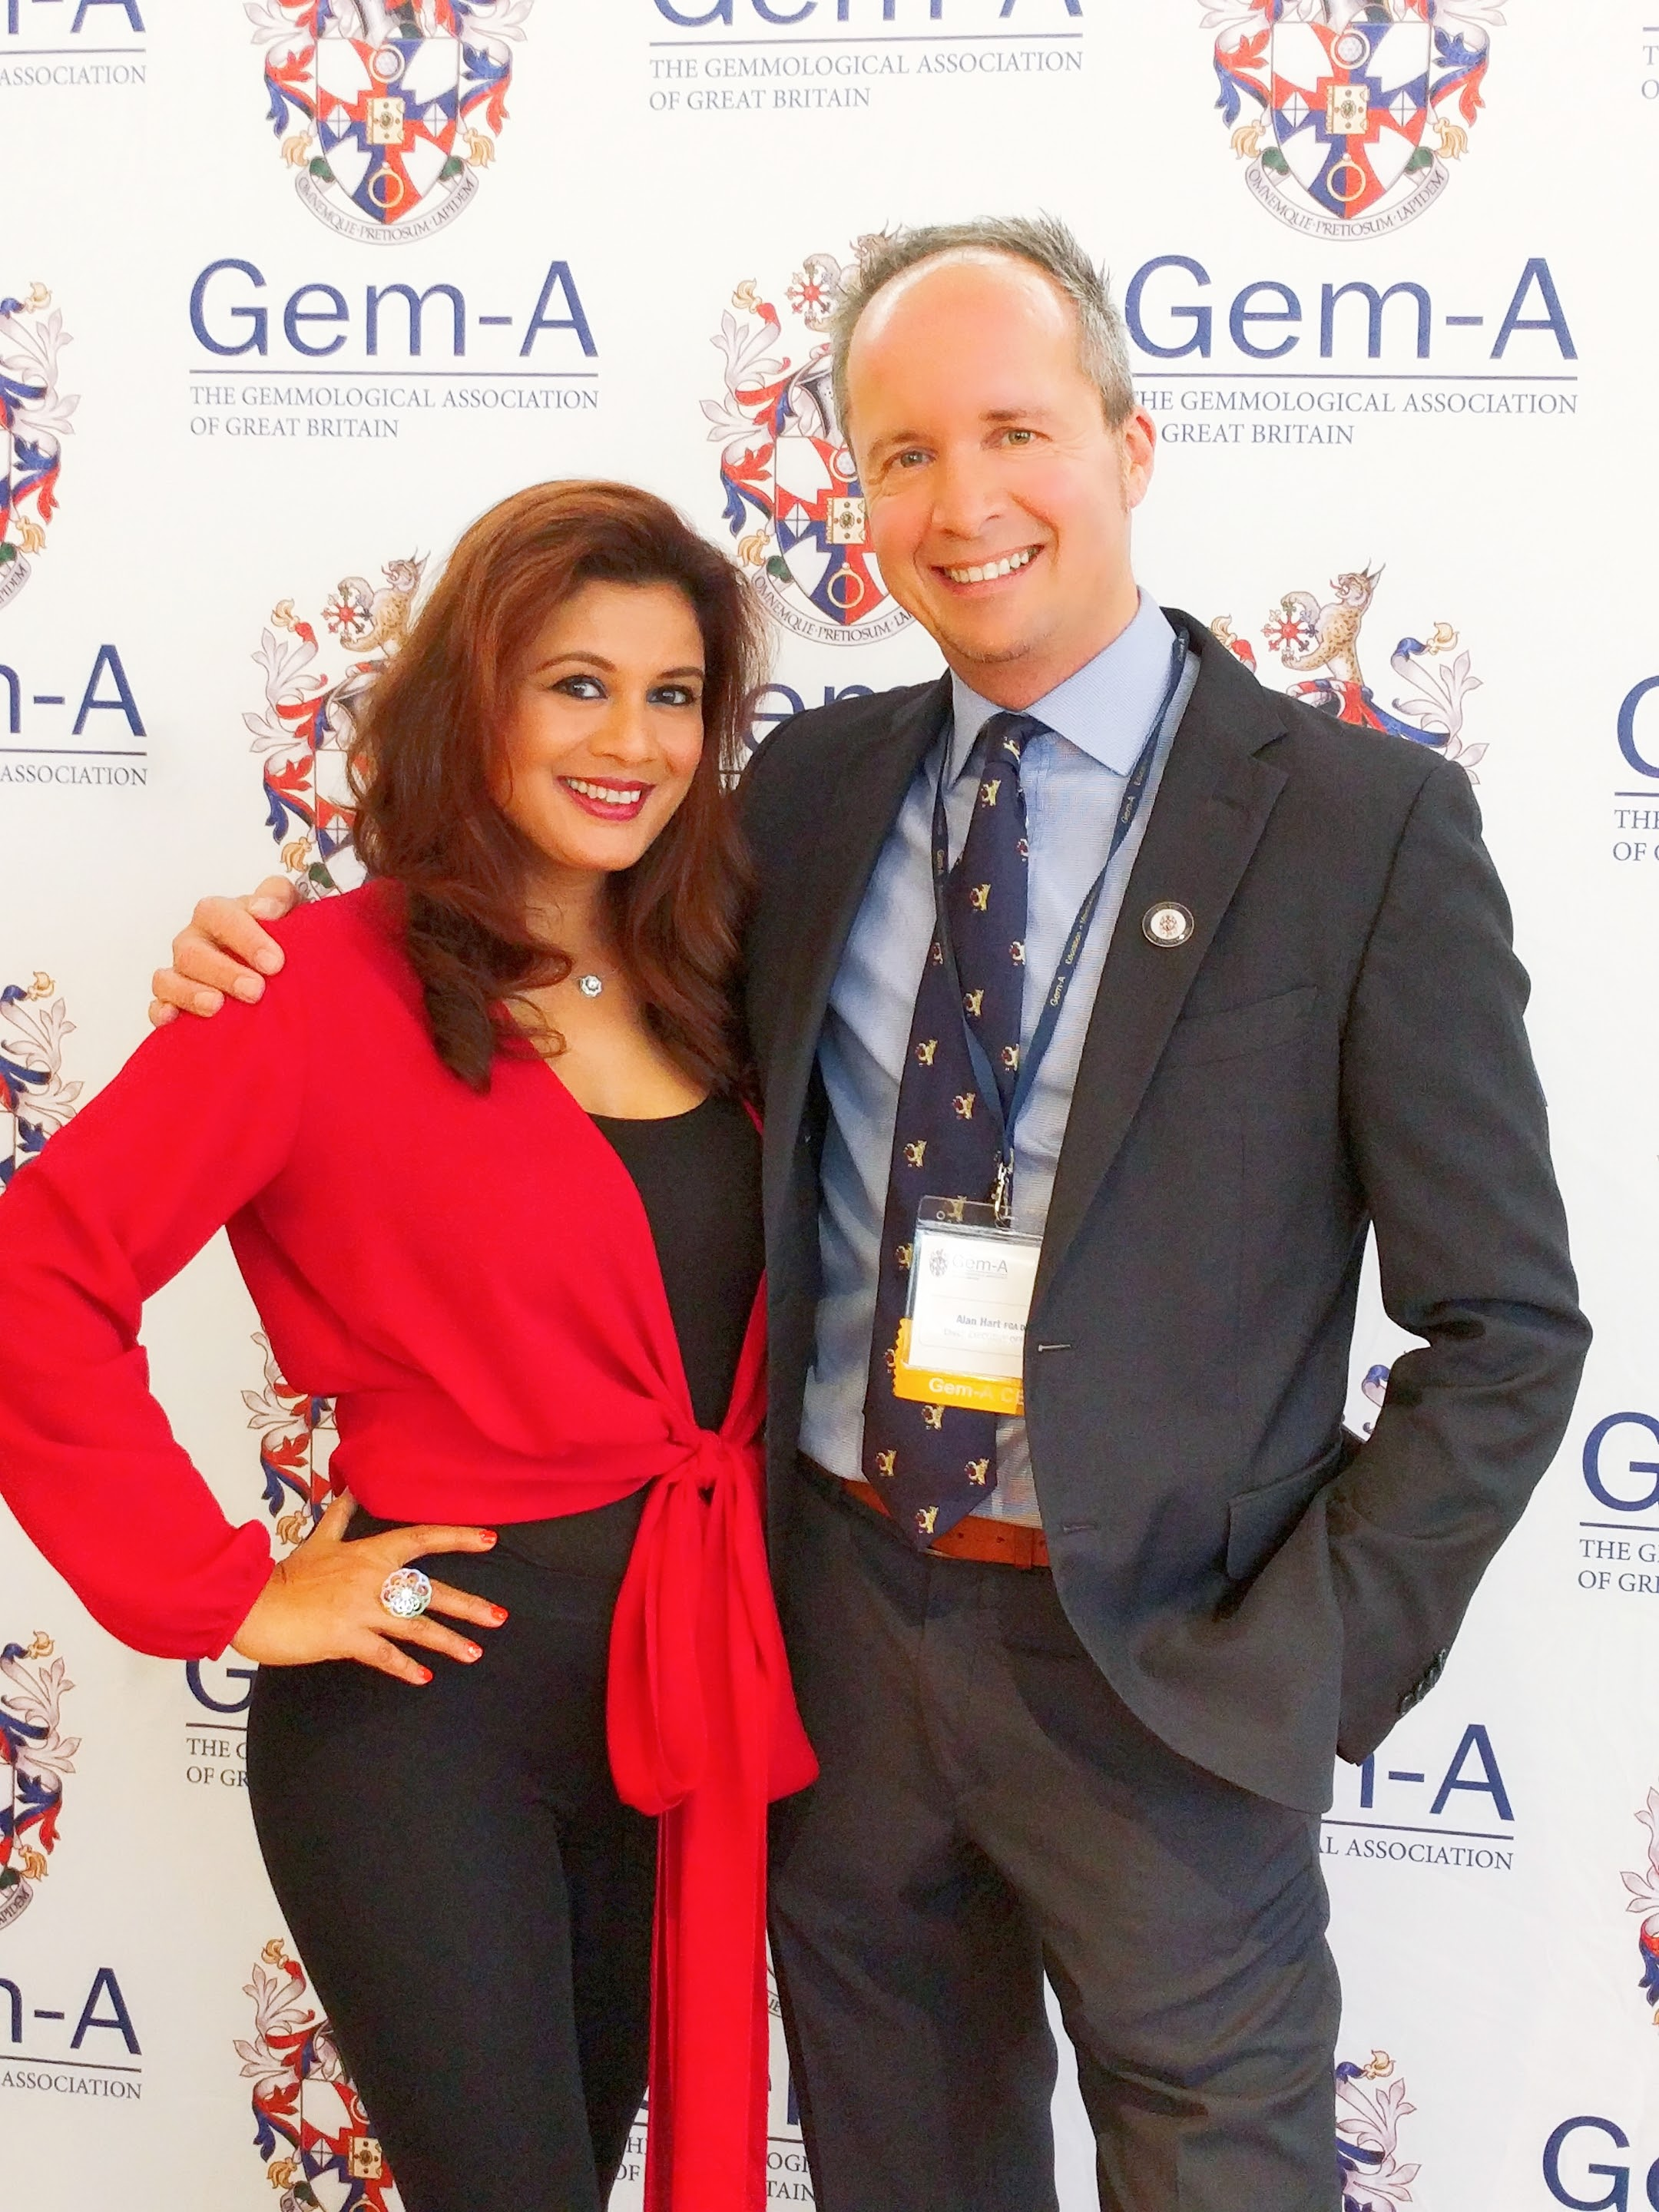 Reena Ahluwalia with Gem-A CEO, Alan Hart.